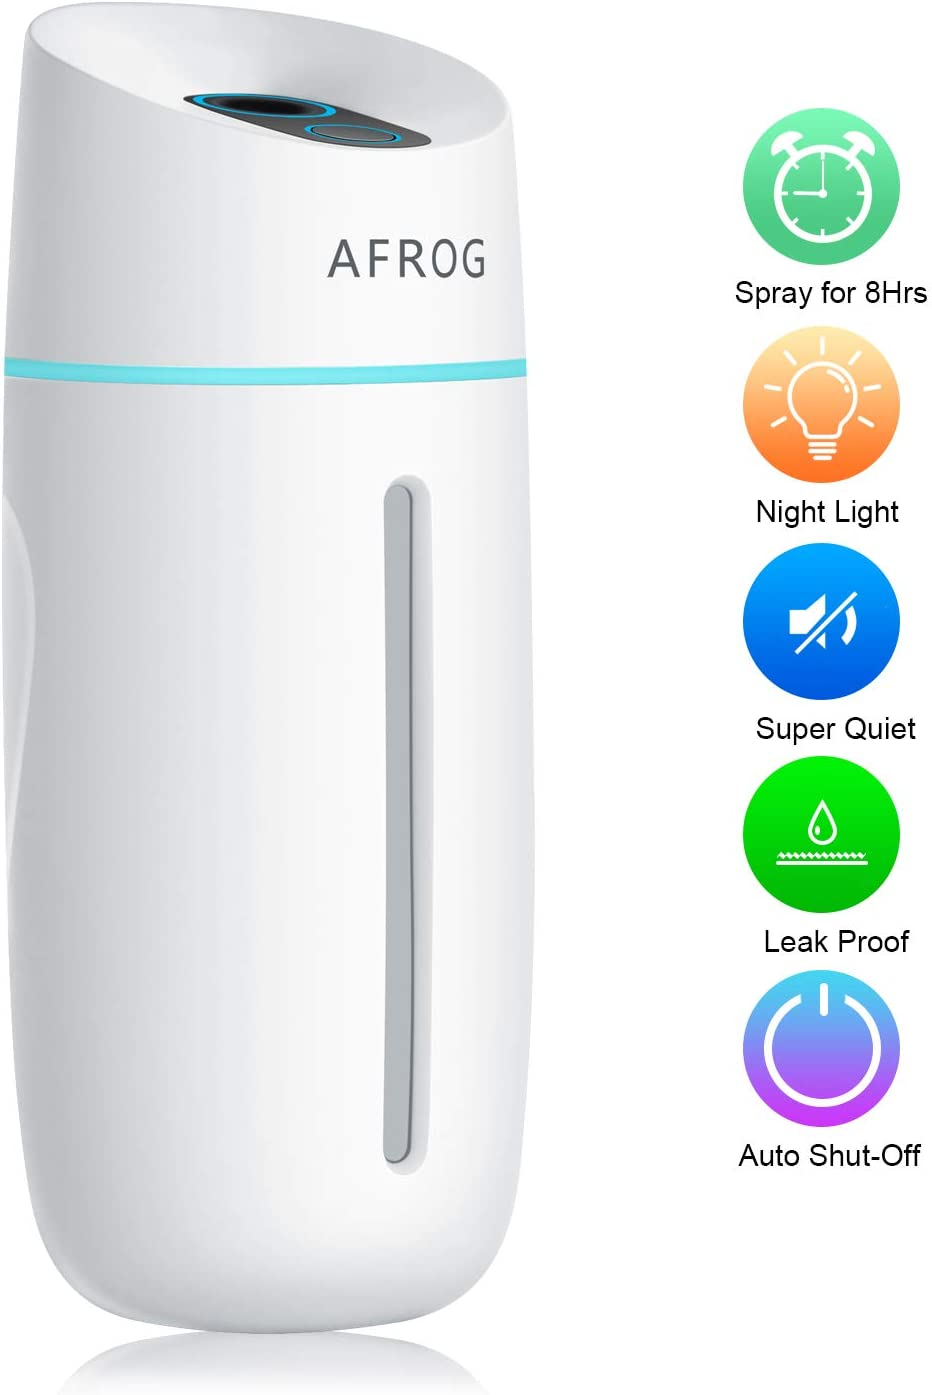 Portable Mini Humidifiers for Bedroom, Small Cool Mist Humidifier with 7 Color Night Light, USB Personal Humidifiers for Baby Bedroom Travel Office Home, Auto Shut-Off, 2 Mist Modes, Super Quiet, with Adapter